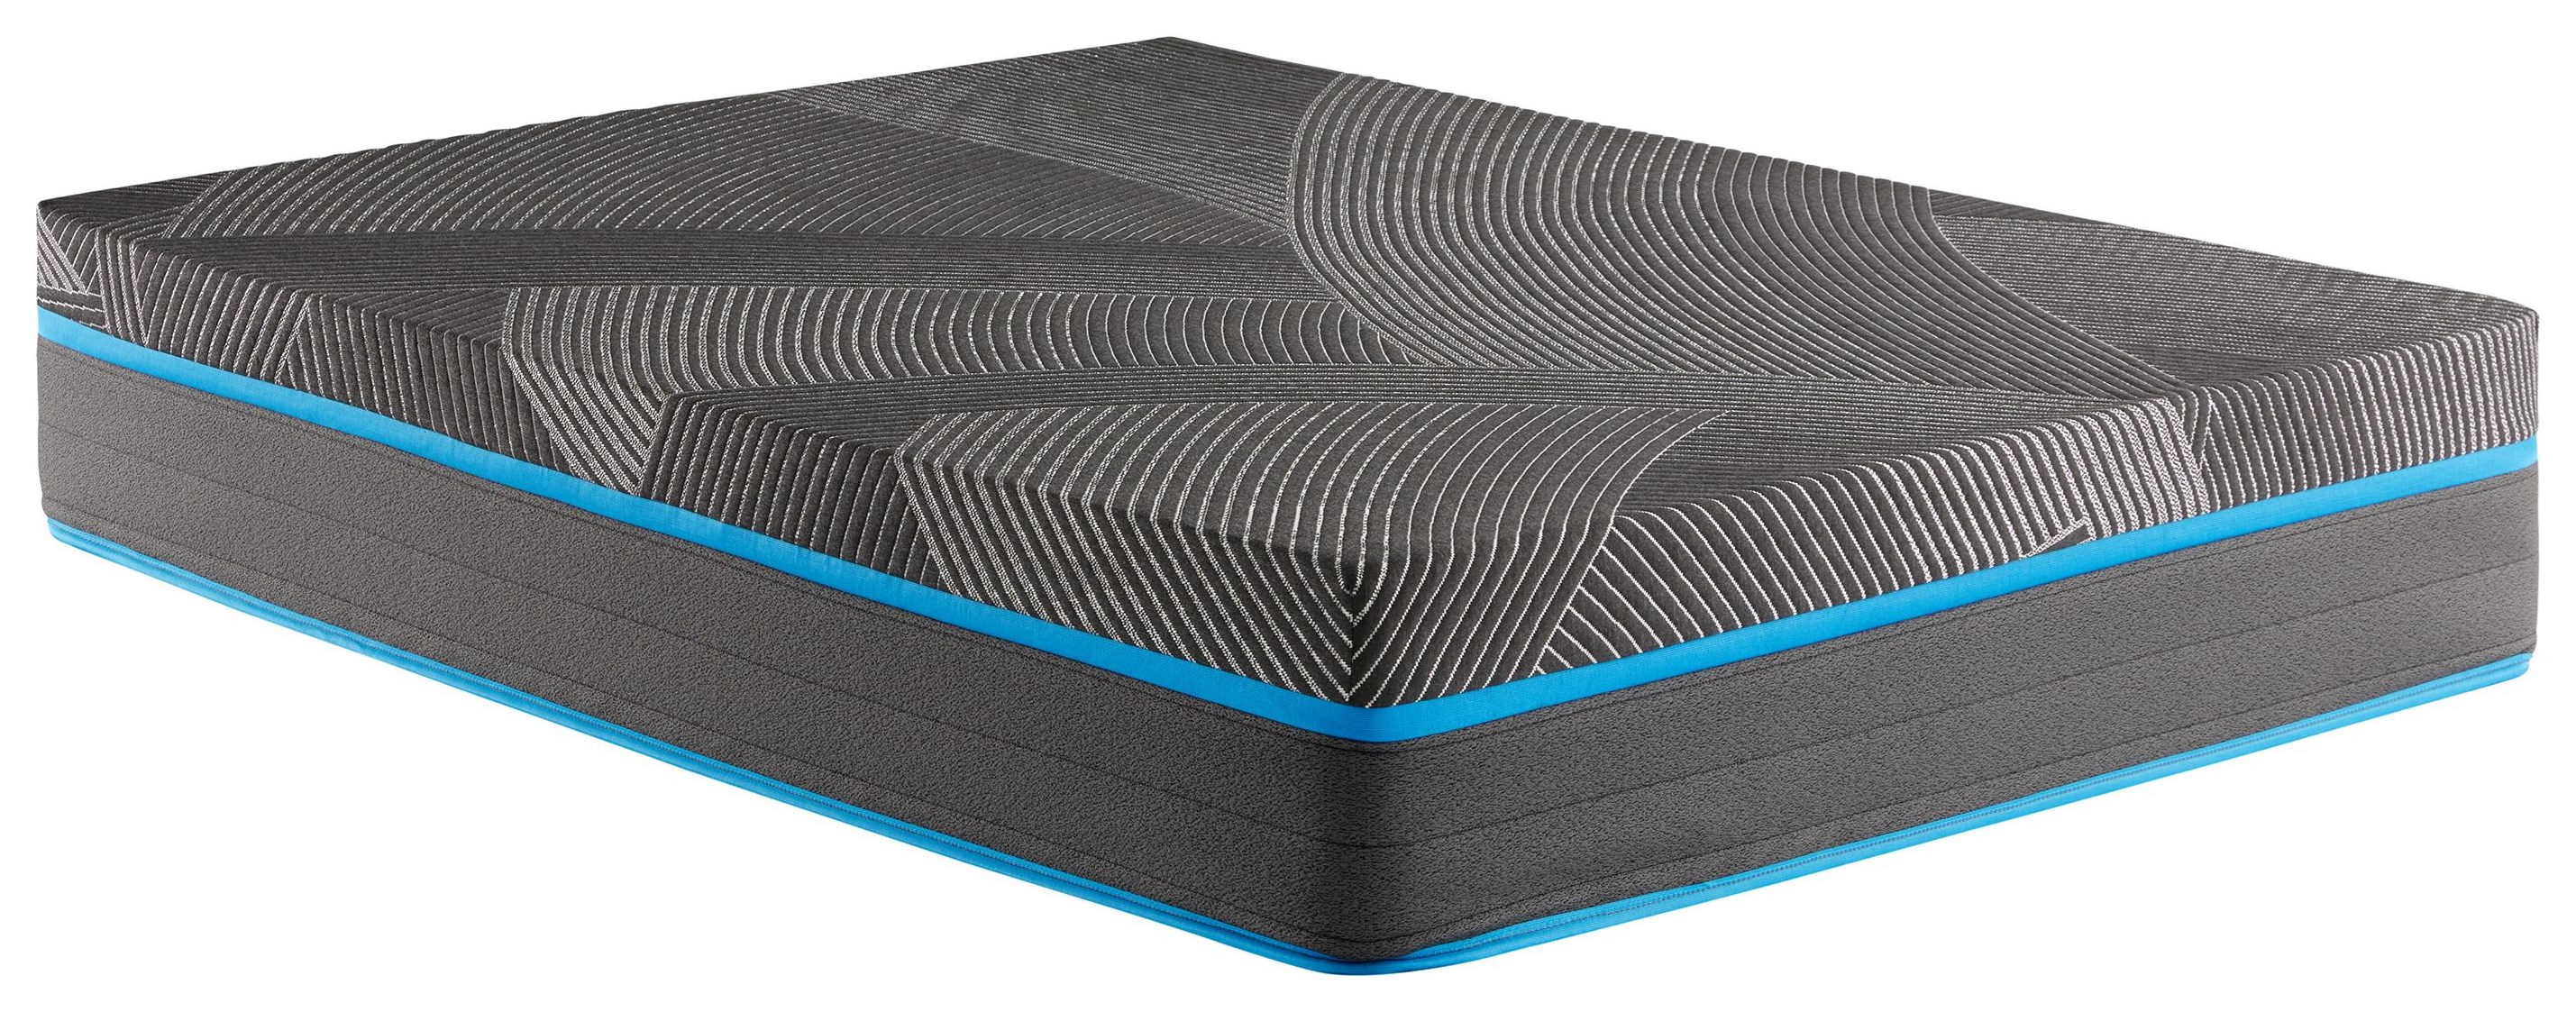 """Discovery Park 12"""" Queen Medium Hybrid Mattress by Corsicana at Beck's Furniture"""